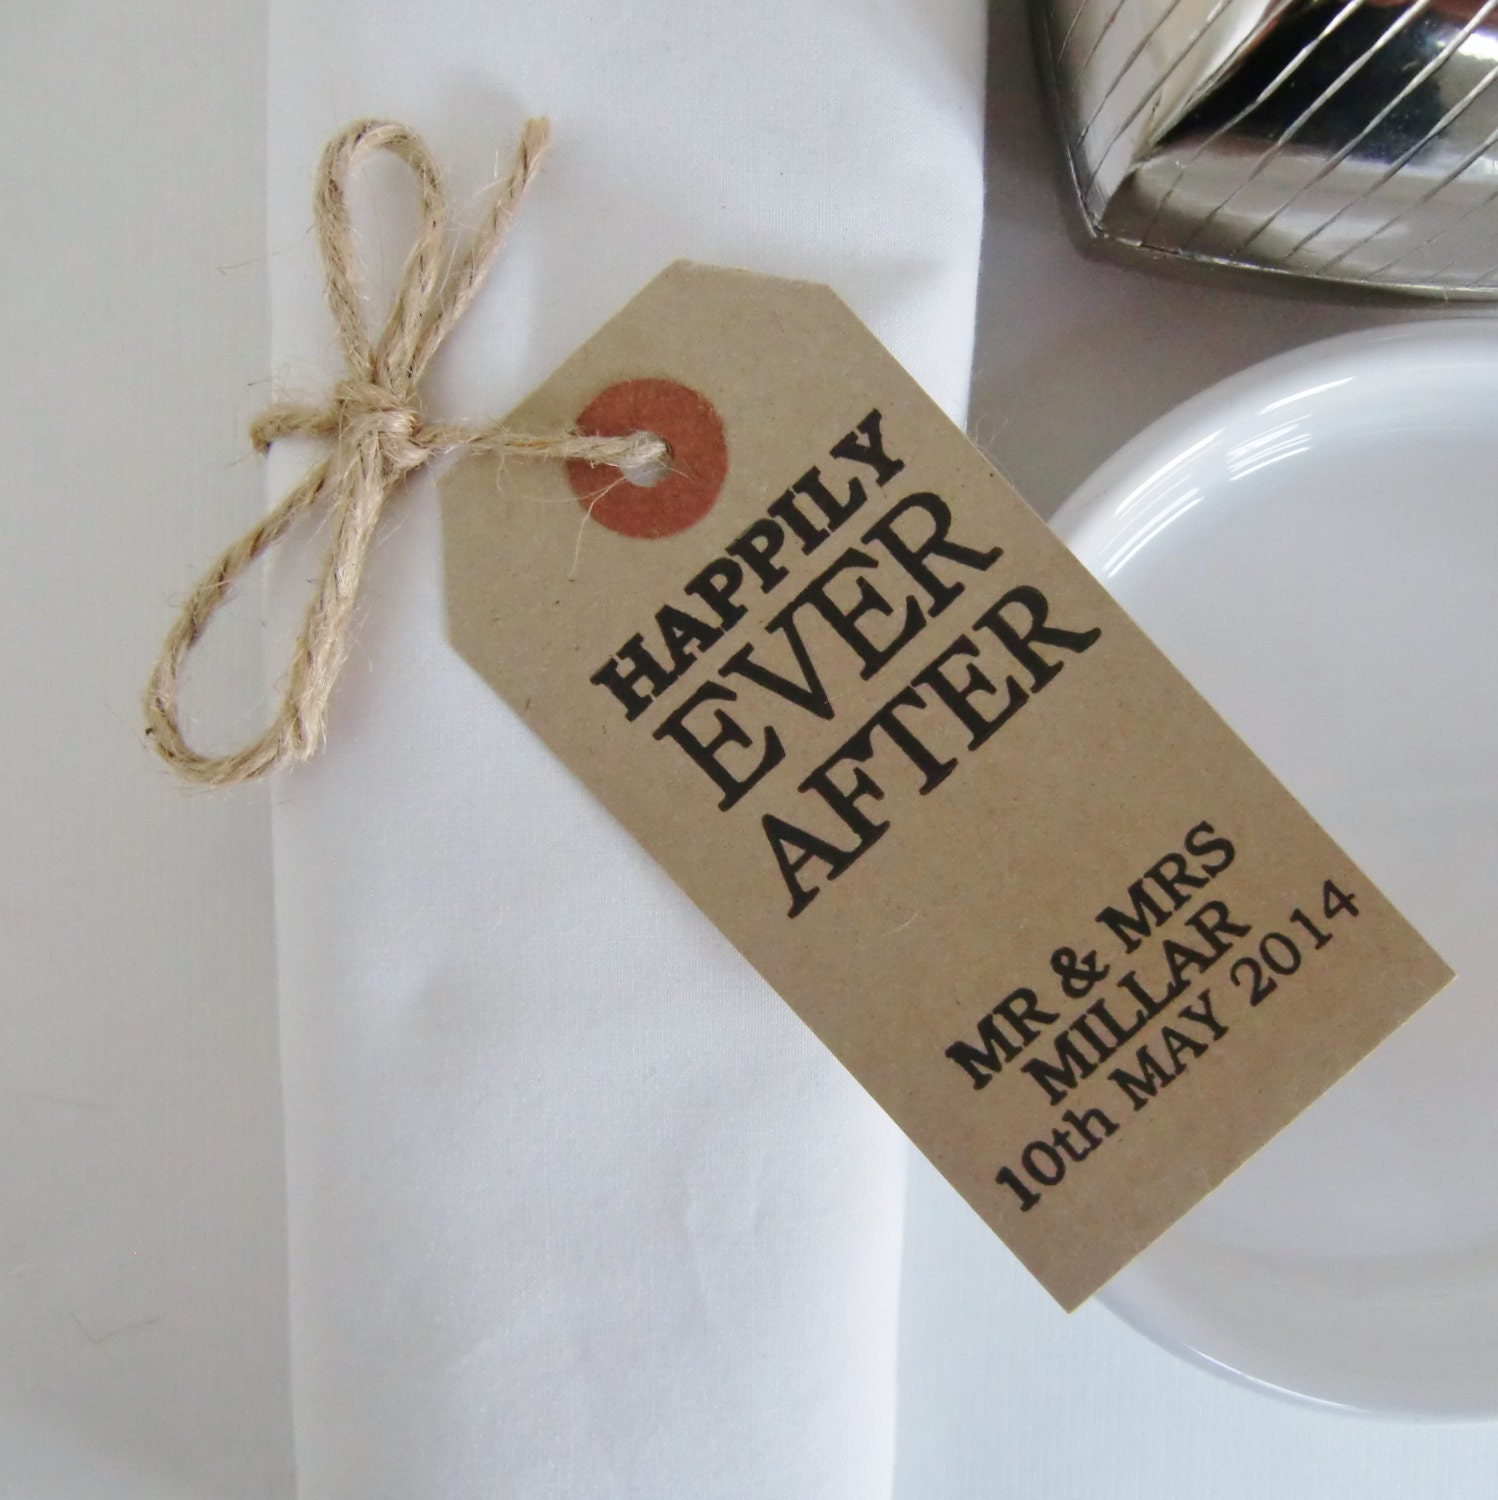 Rehearsal Dinner: Wedding Rehearsal Dinner-Wedding Rehearsal Table By